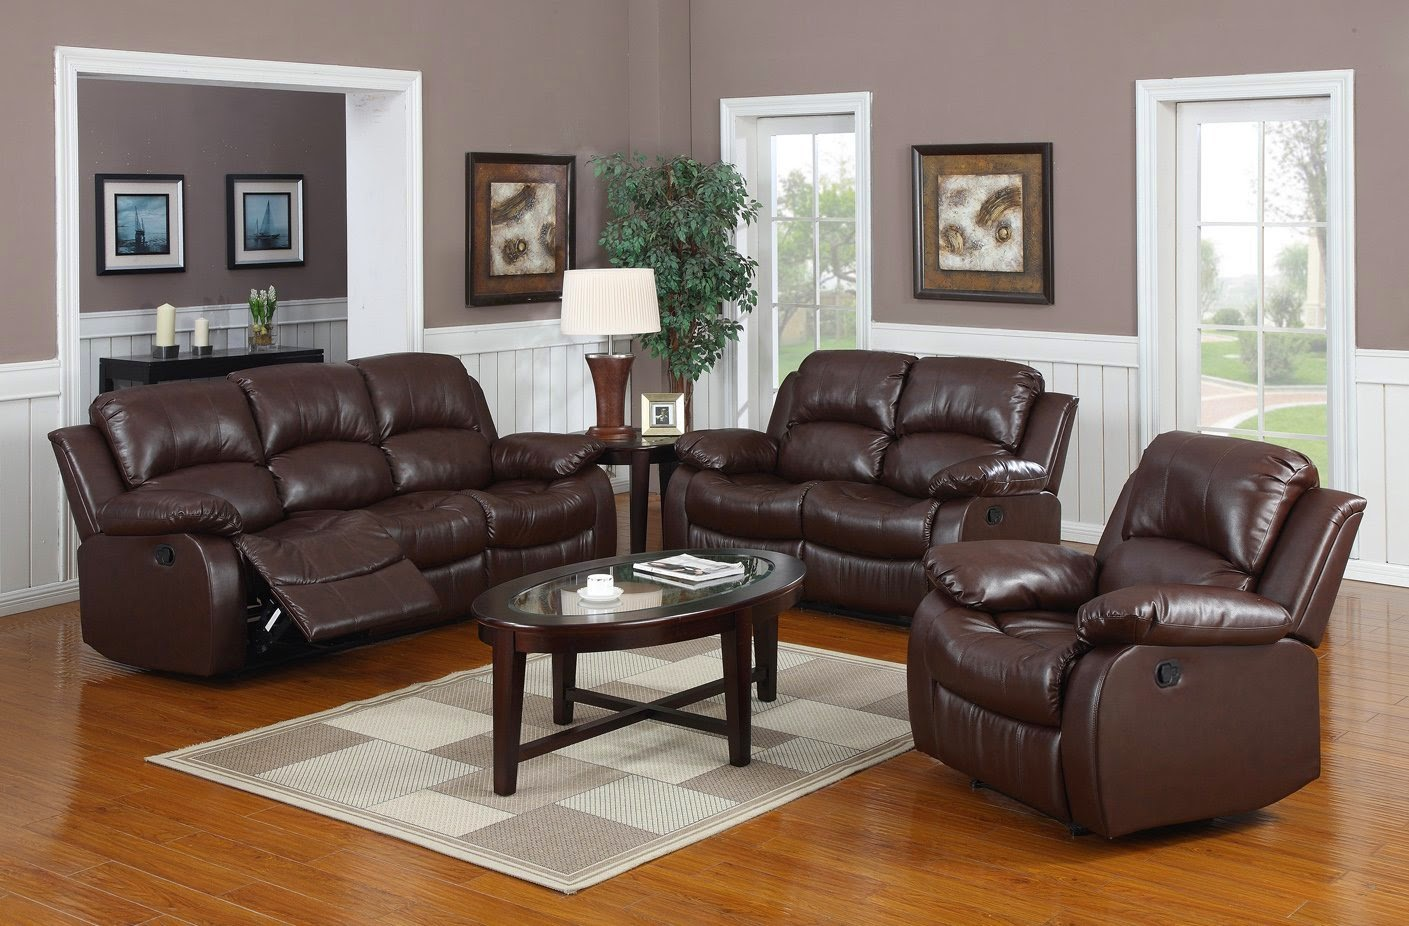 Sofa Recliner Reviews Milano Leather Recliner Sofa Set